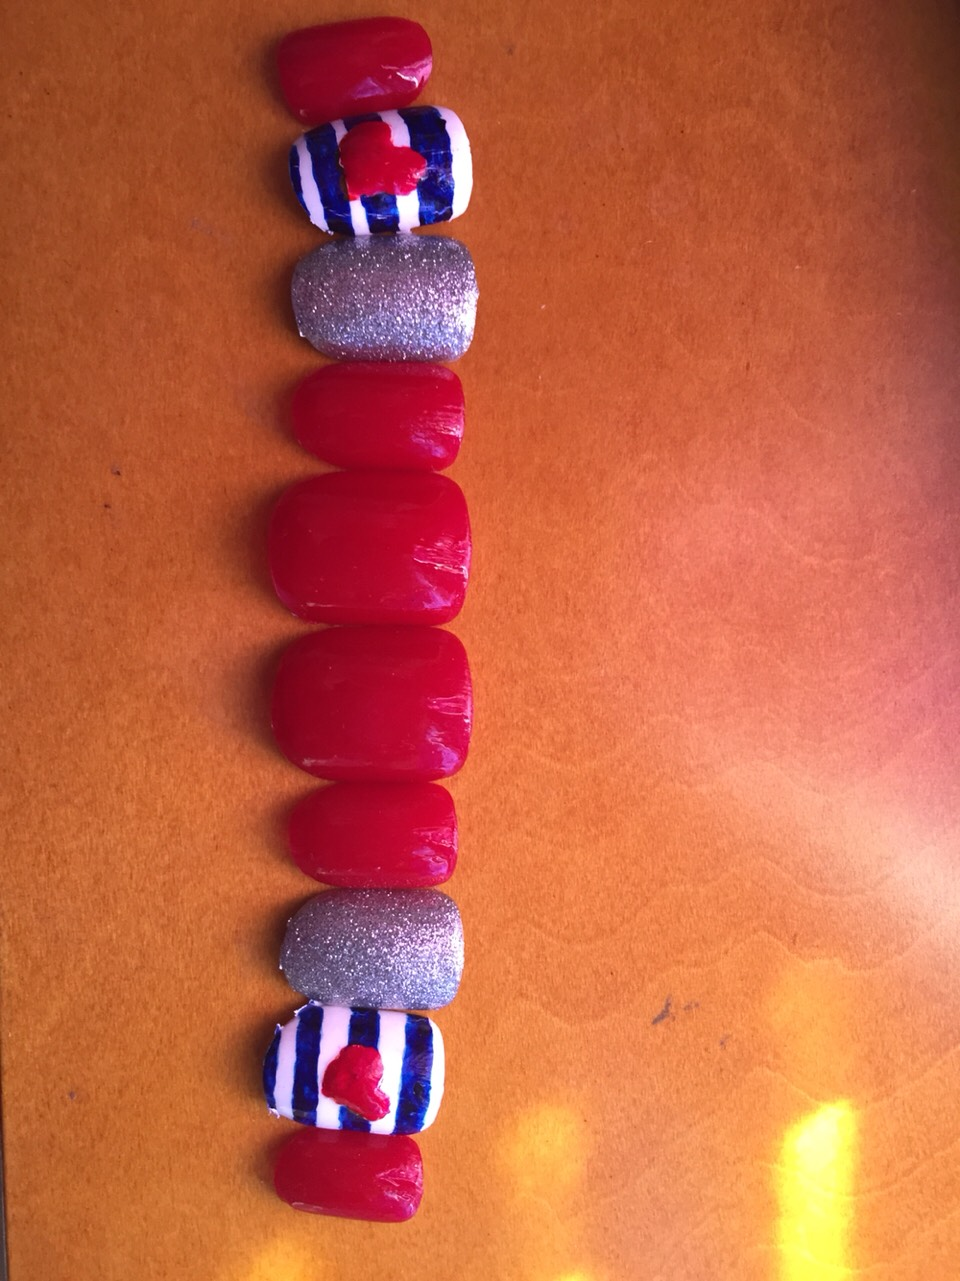 Cover all nails with a top coat and let to dry for a while I let mine For about 3-4 hrs.